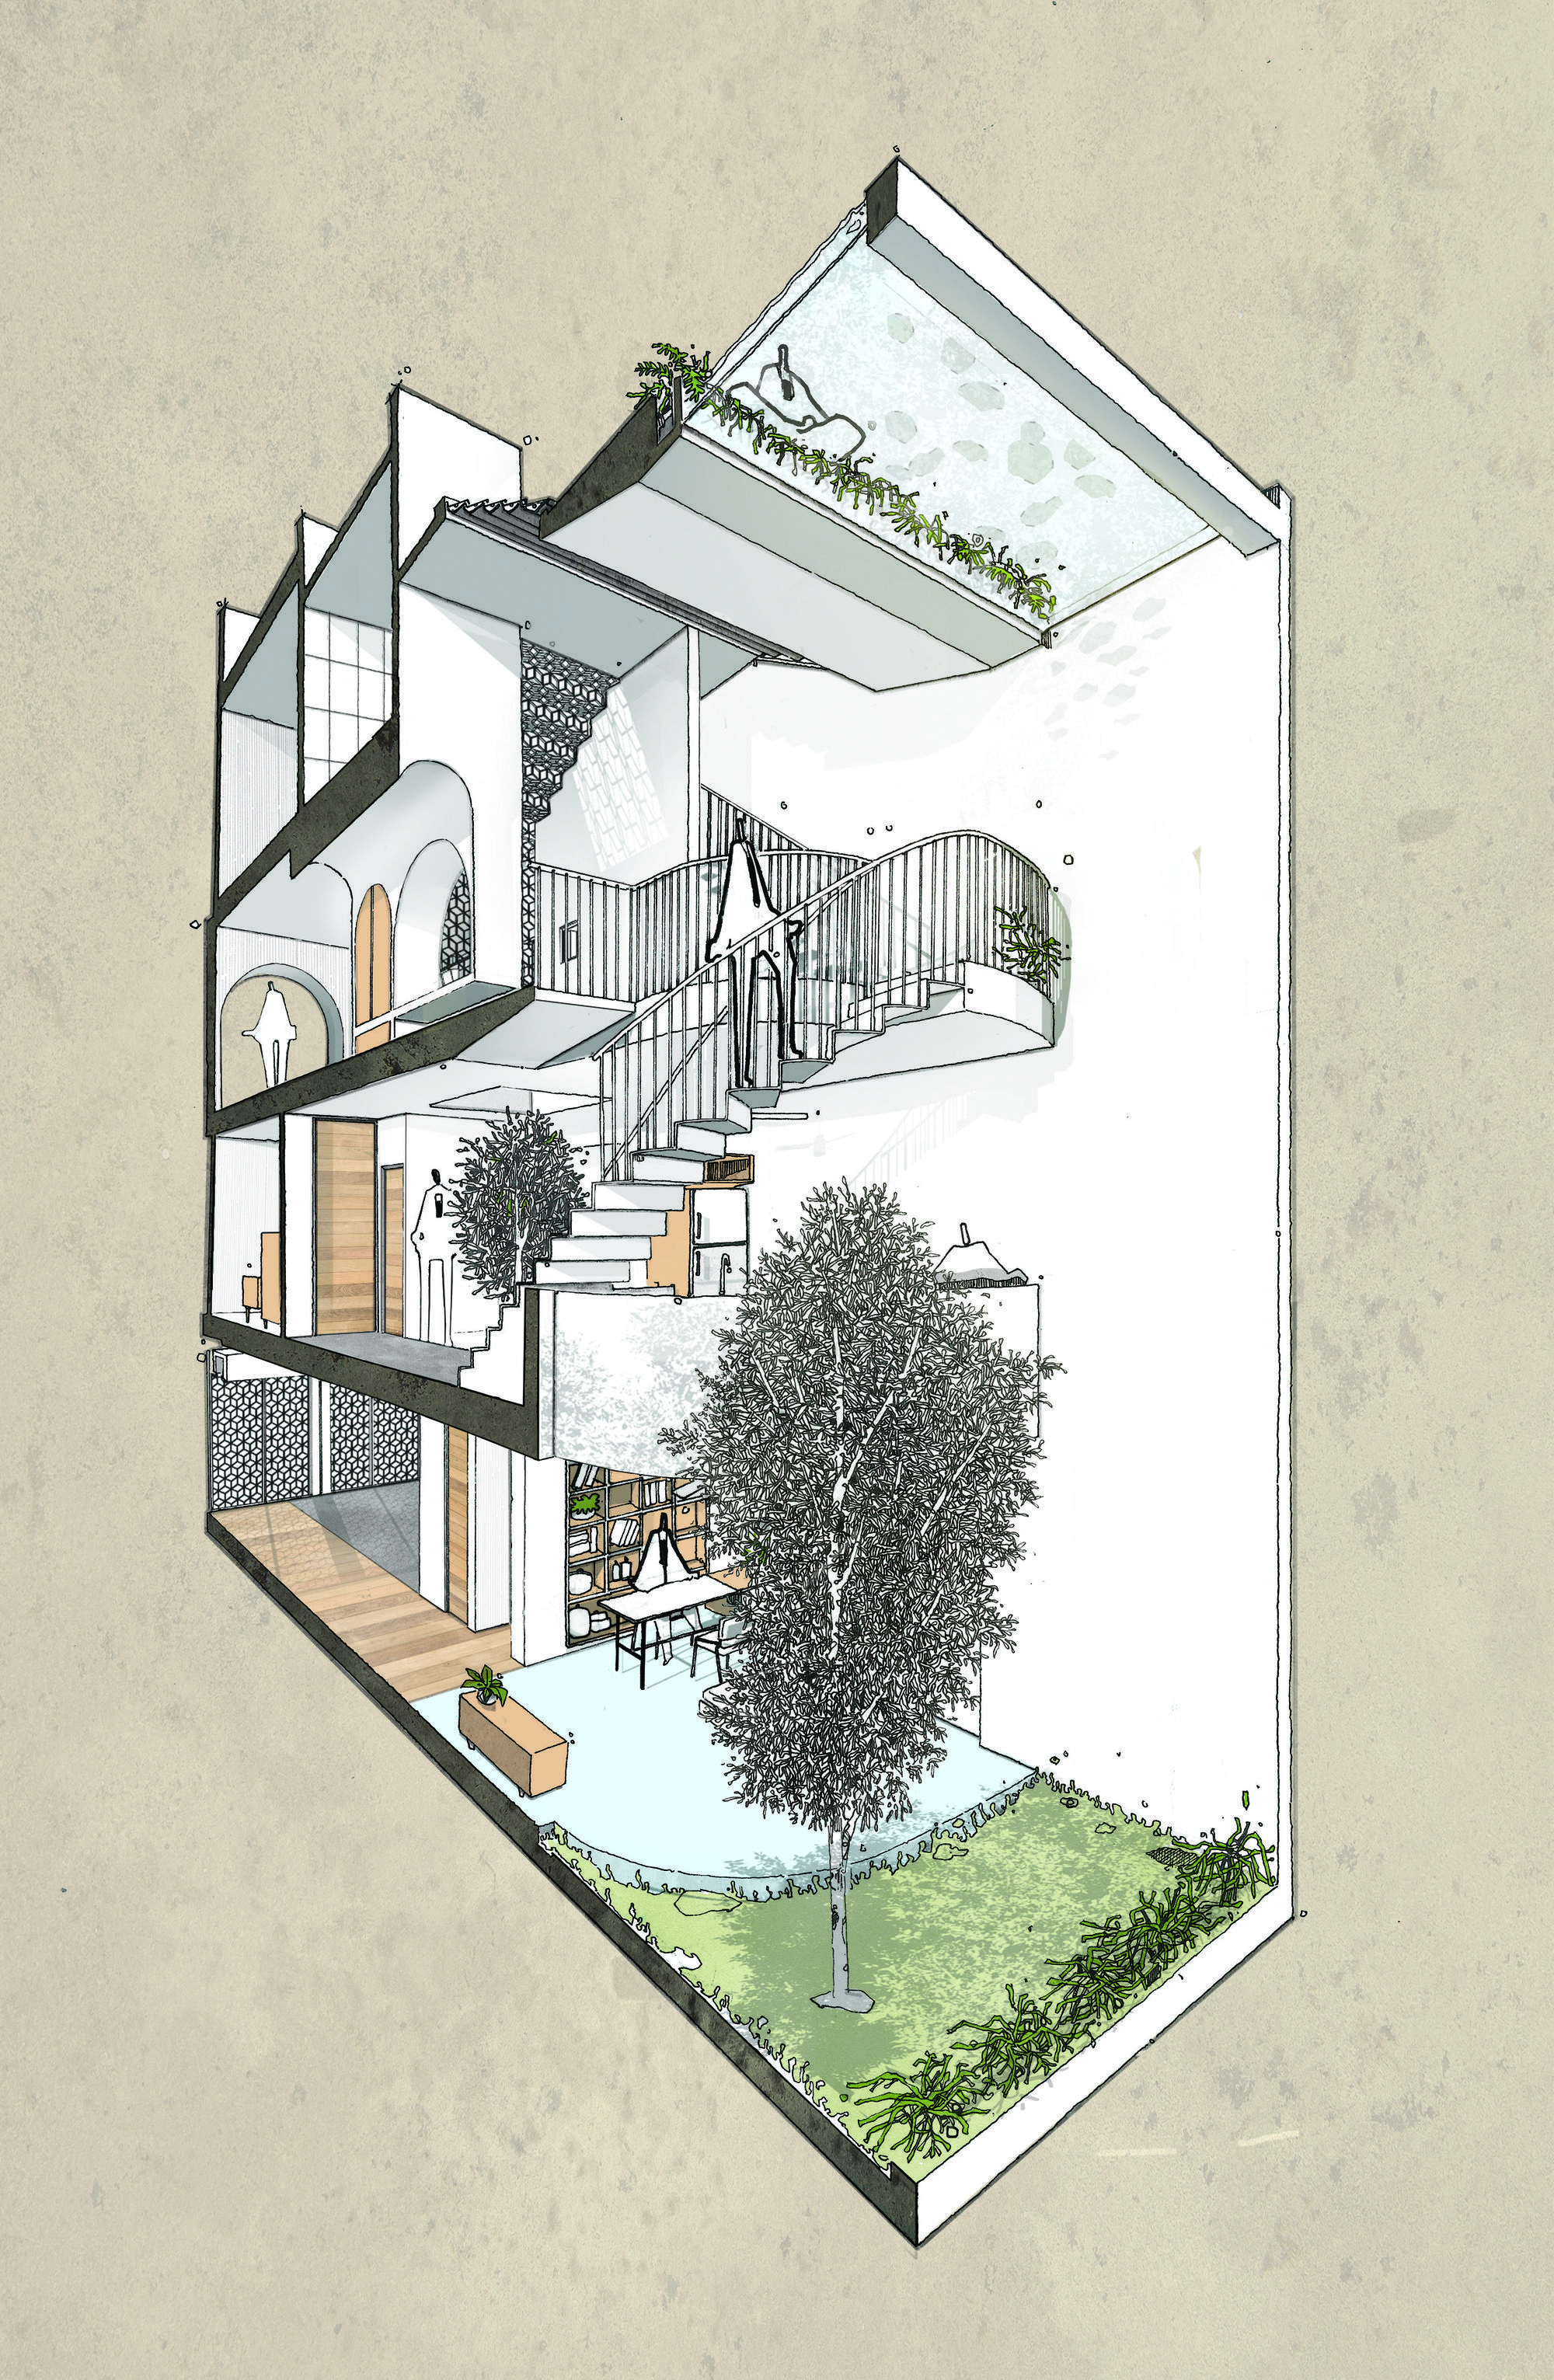 10 Spectacular Home Design Architectural Drawing Ideas Backyard House Architecture Drawing House Designs Exterior